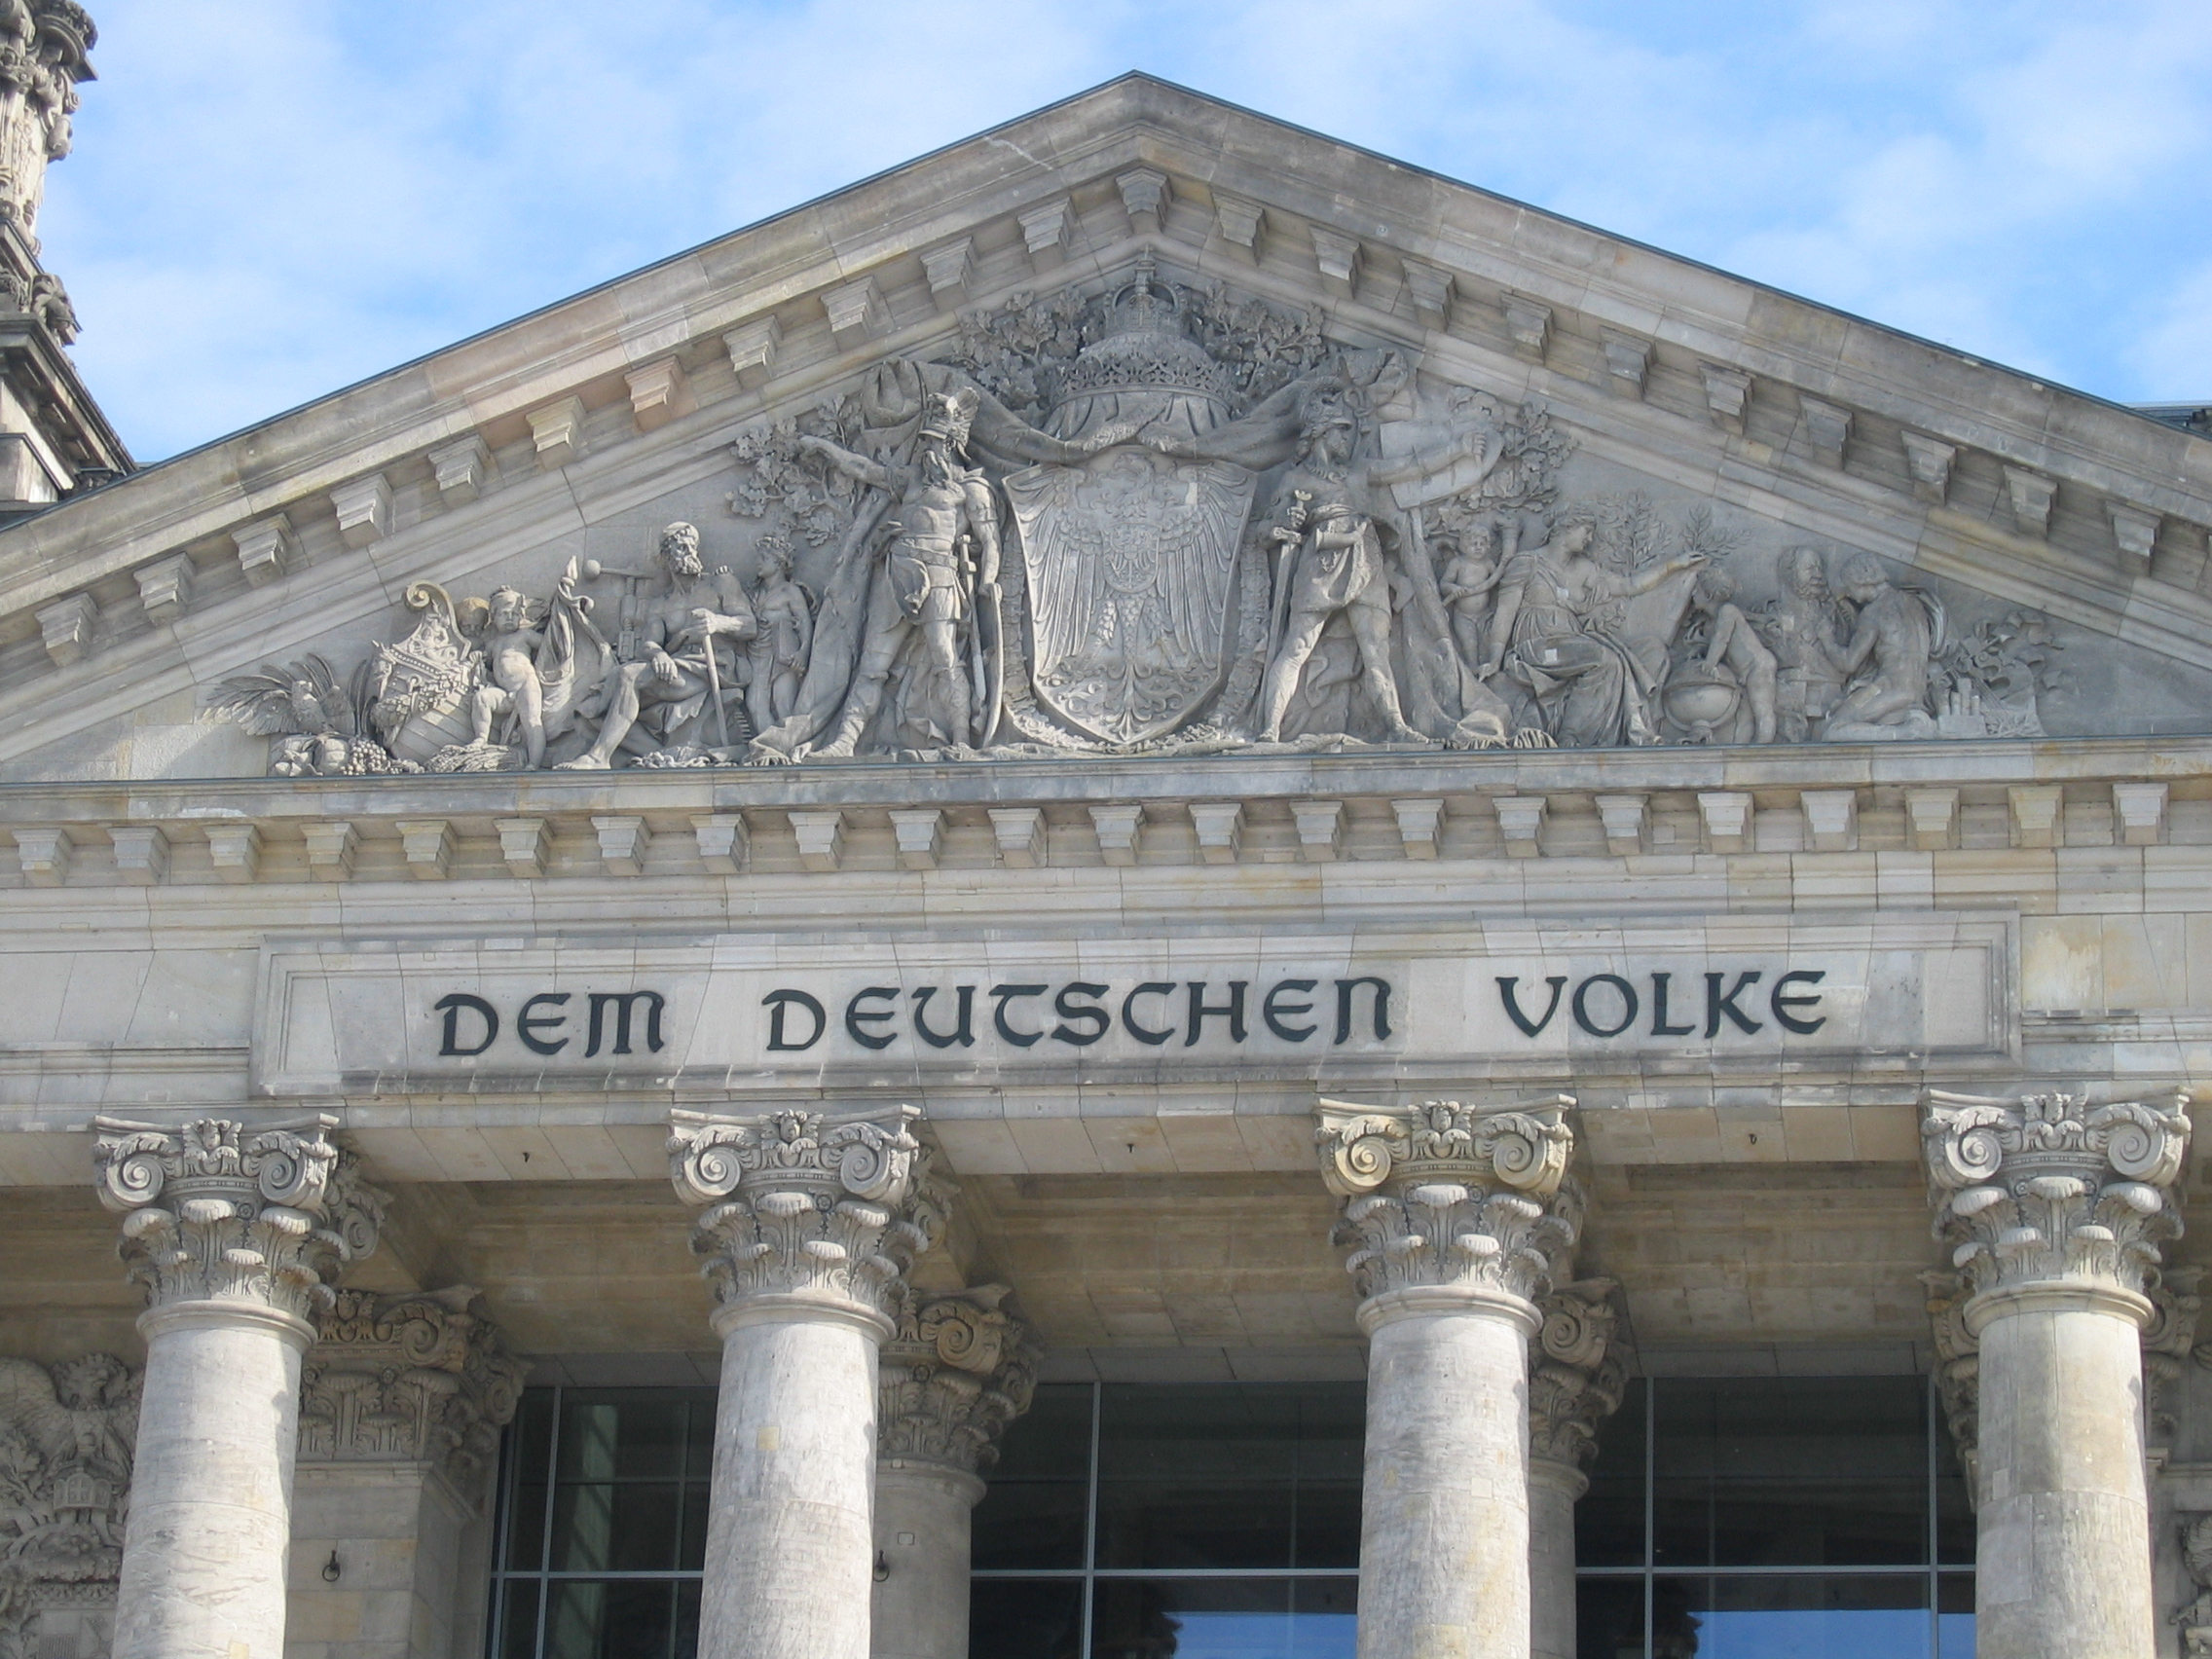 https://upload.wikimedia.org/wikipedia/commons/5/5b/Reichstag_Giebel2.jpg